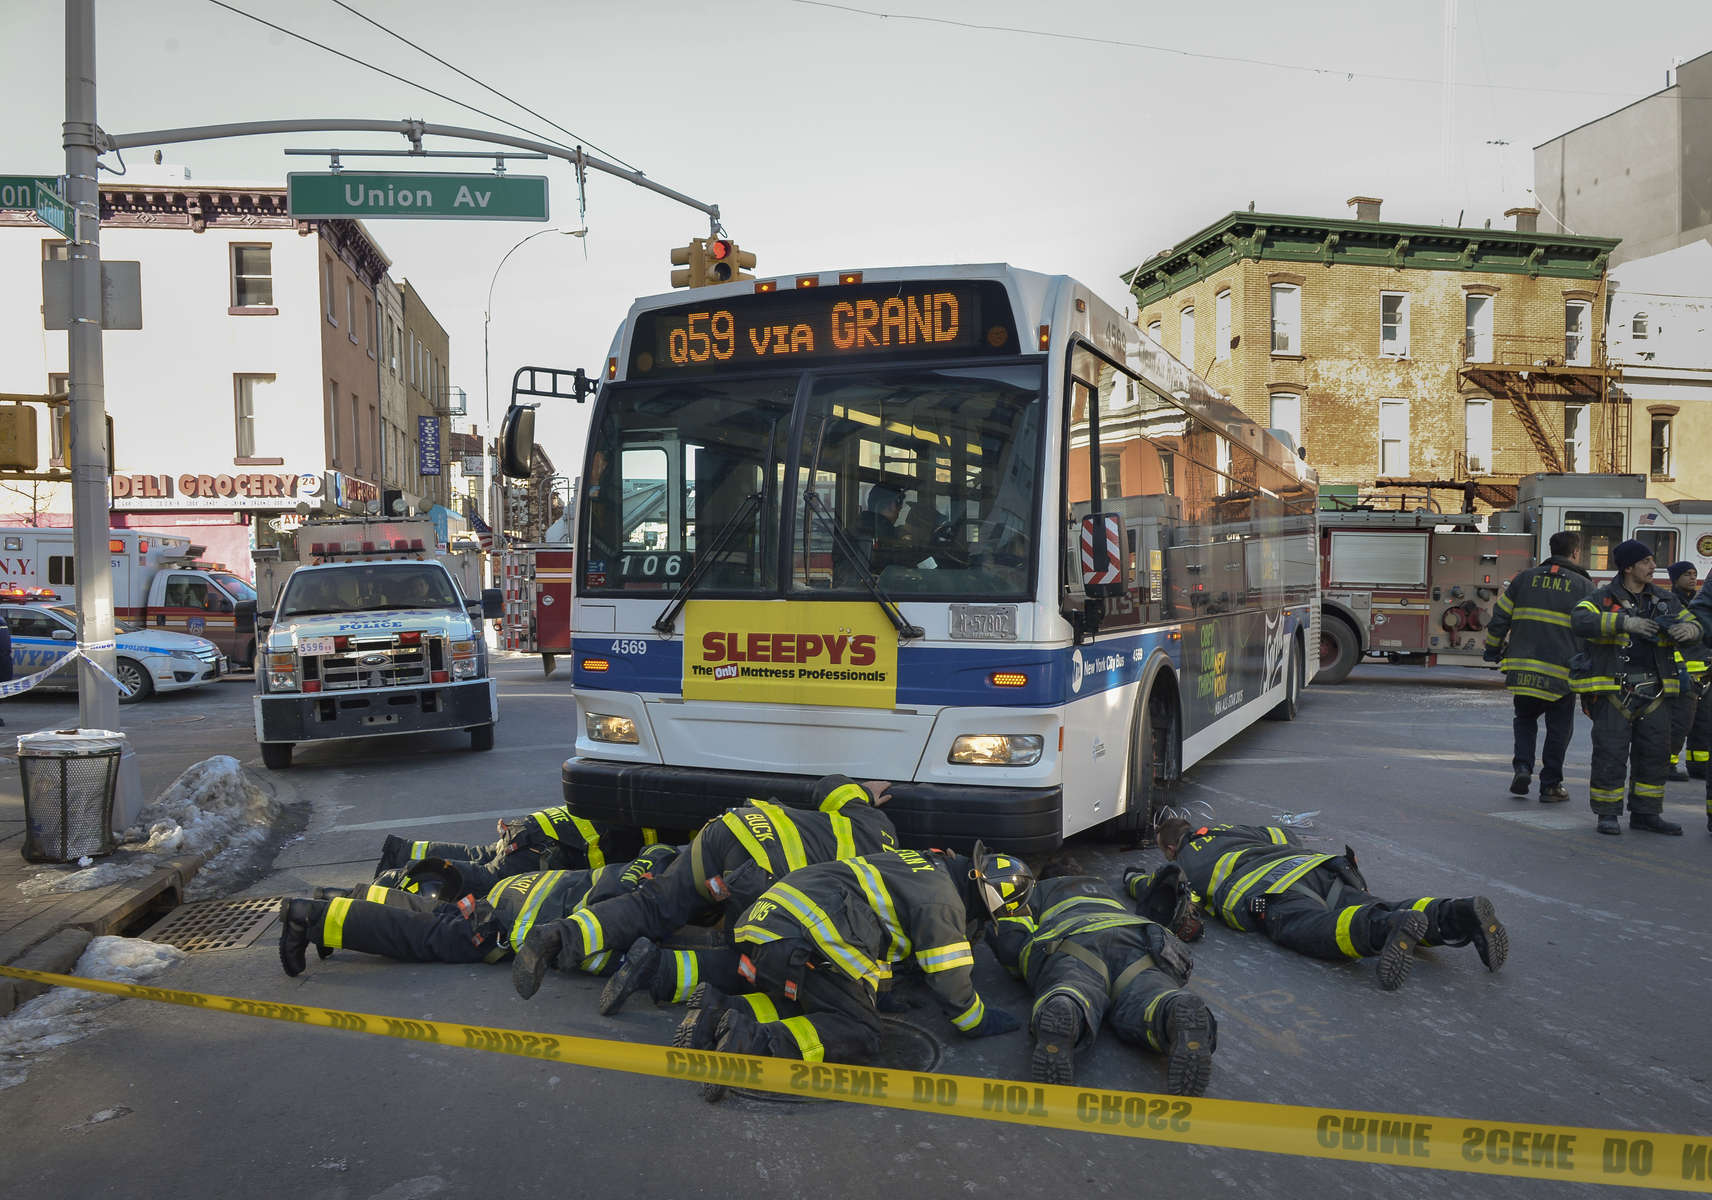 FDNY firefighters check under the MTA bus after Jiahuan Xu, 15, was struck at the corner of Grand Street and Union Street in Brooklyn on February 13, 2015. MTA bus driver Francisco de Jesus, 58, was arrested on criminal charges under Mayor Bill DeBlasio's Vision Zero plan. In a previous time he would have just received a ticket charging him with a non criminal traffic violation.